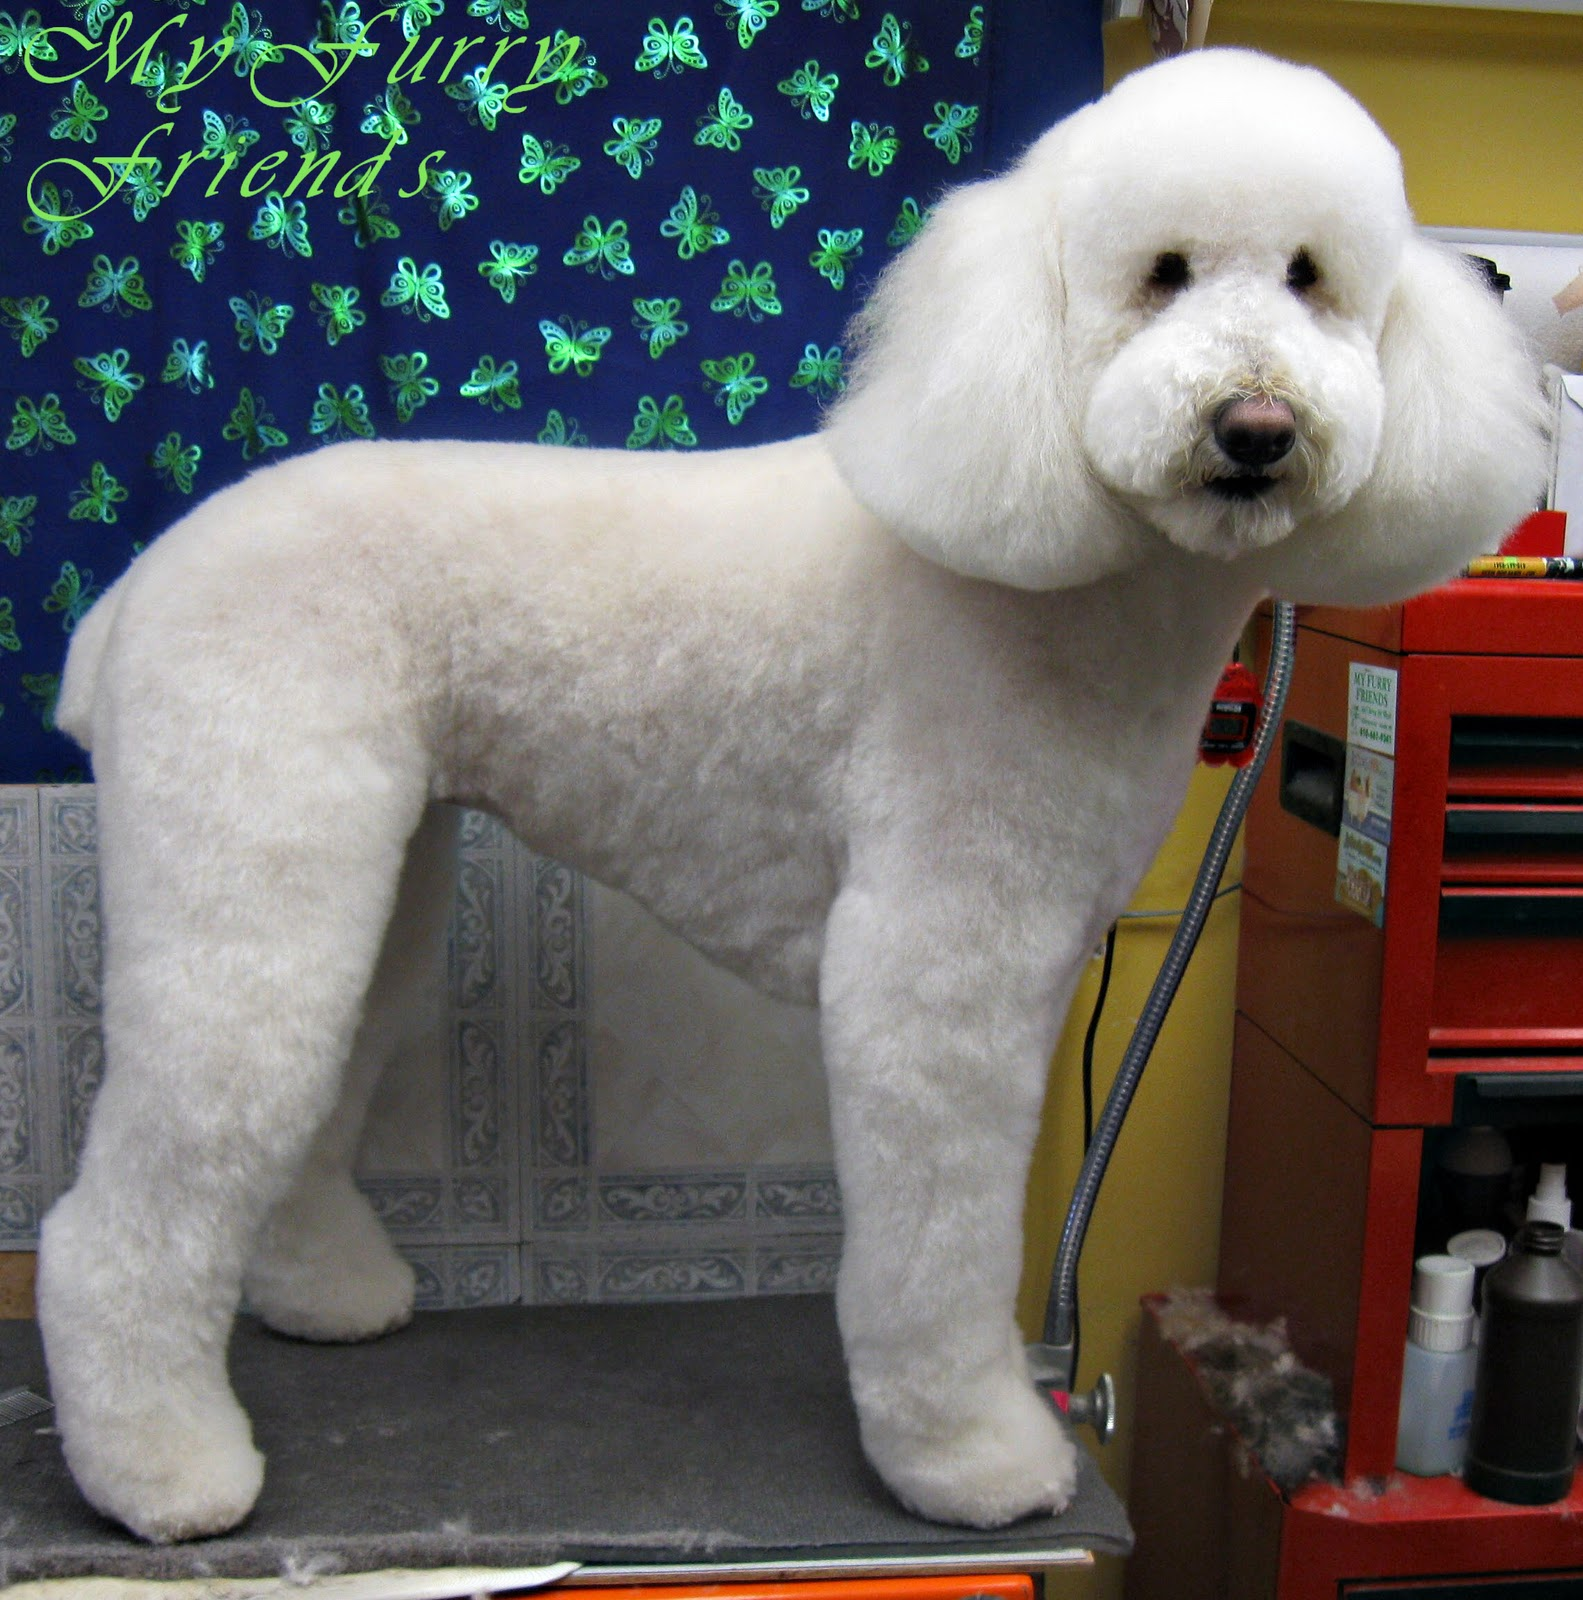 Standard poodle haircuts or of unless soft haircuts standard poodle - Labradoodle Sisters Both Could Pass For Standard Poodles